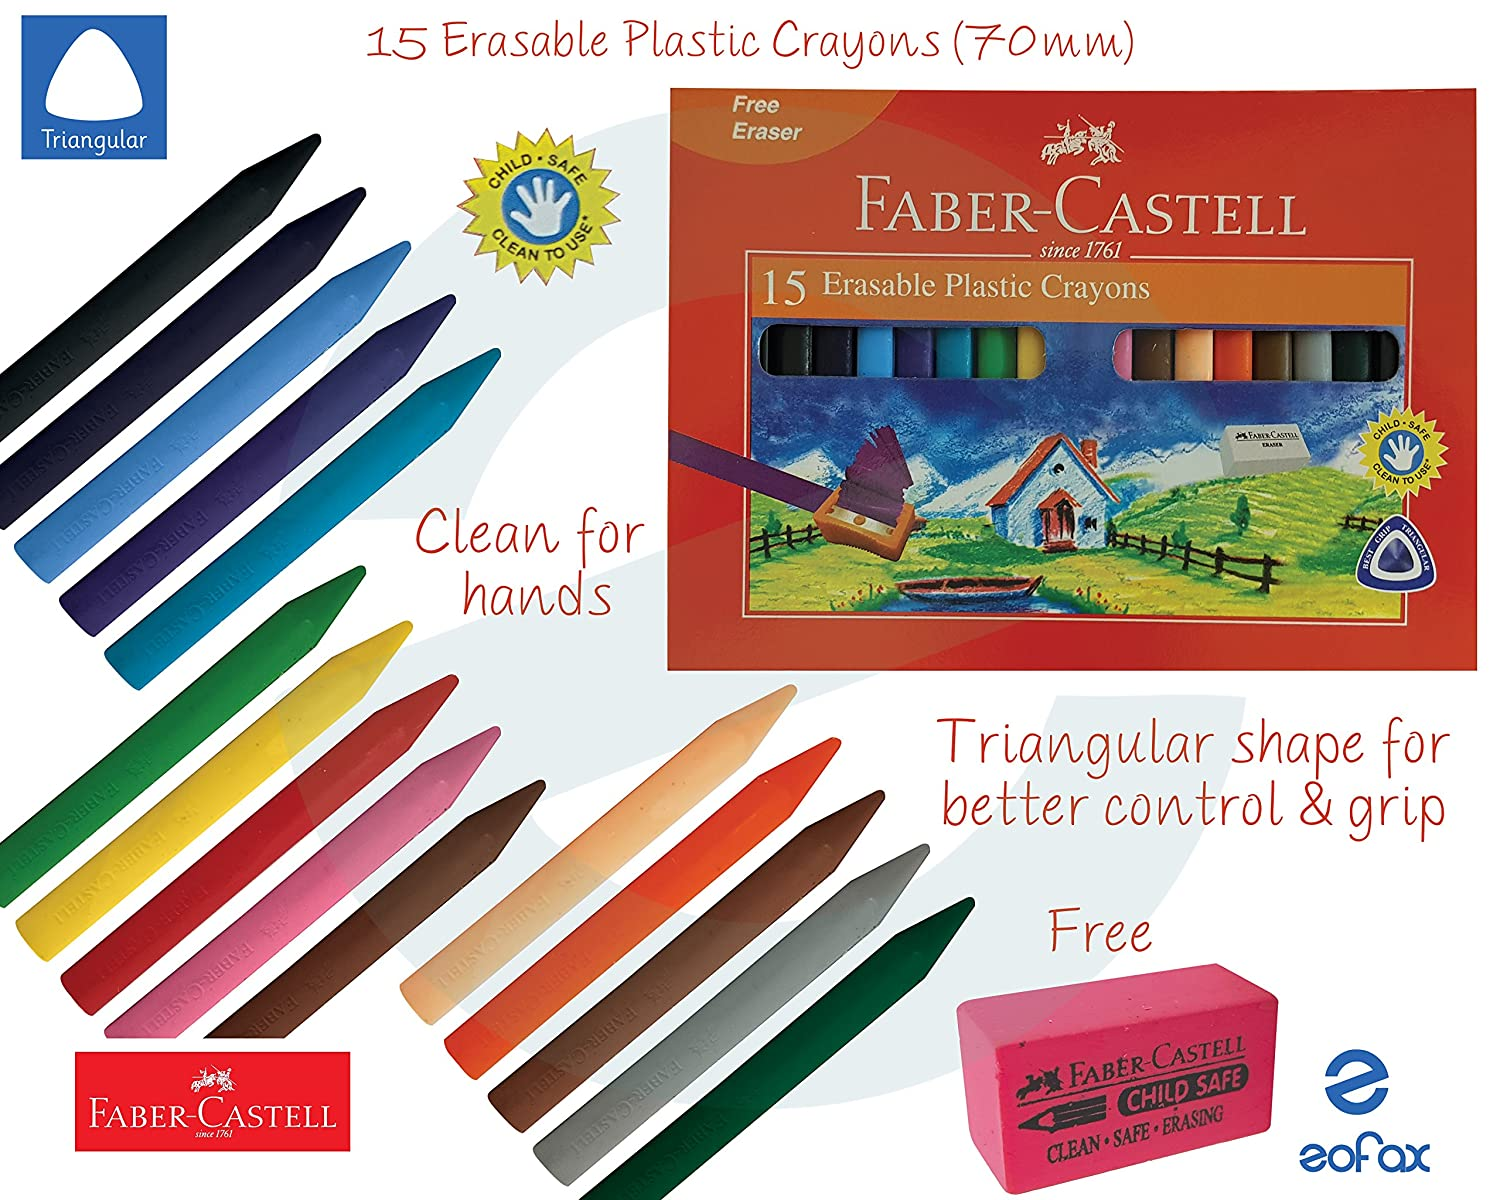 Faber Castell - Pack of 15 Erasable Plastic Crayons 70mm - Assorted Colours FABER CASTELL I